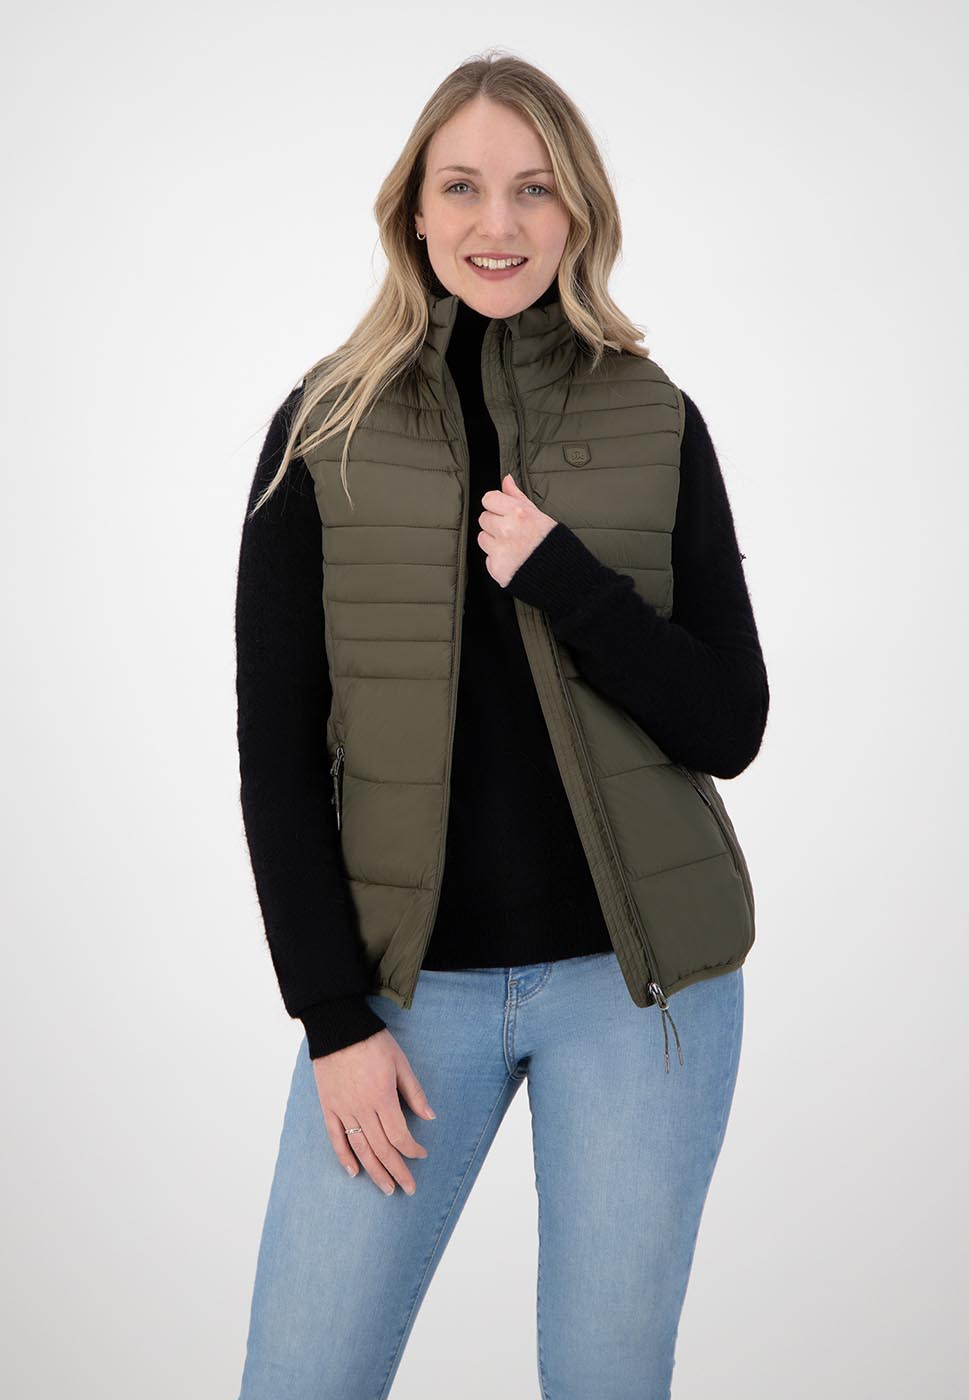 Kjelvik Scandinavian Clothing - Women Bodywarmers Denise Olive